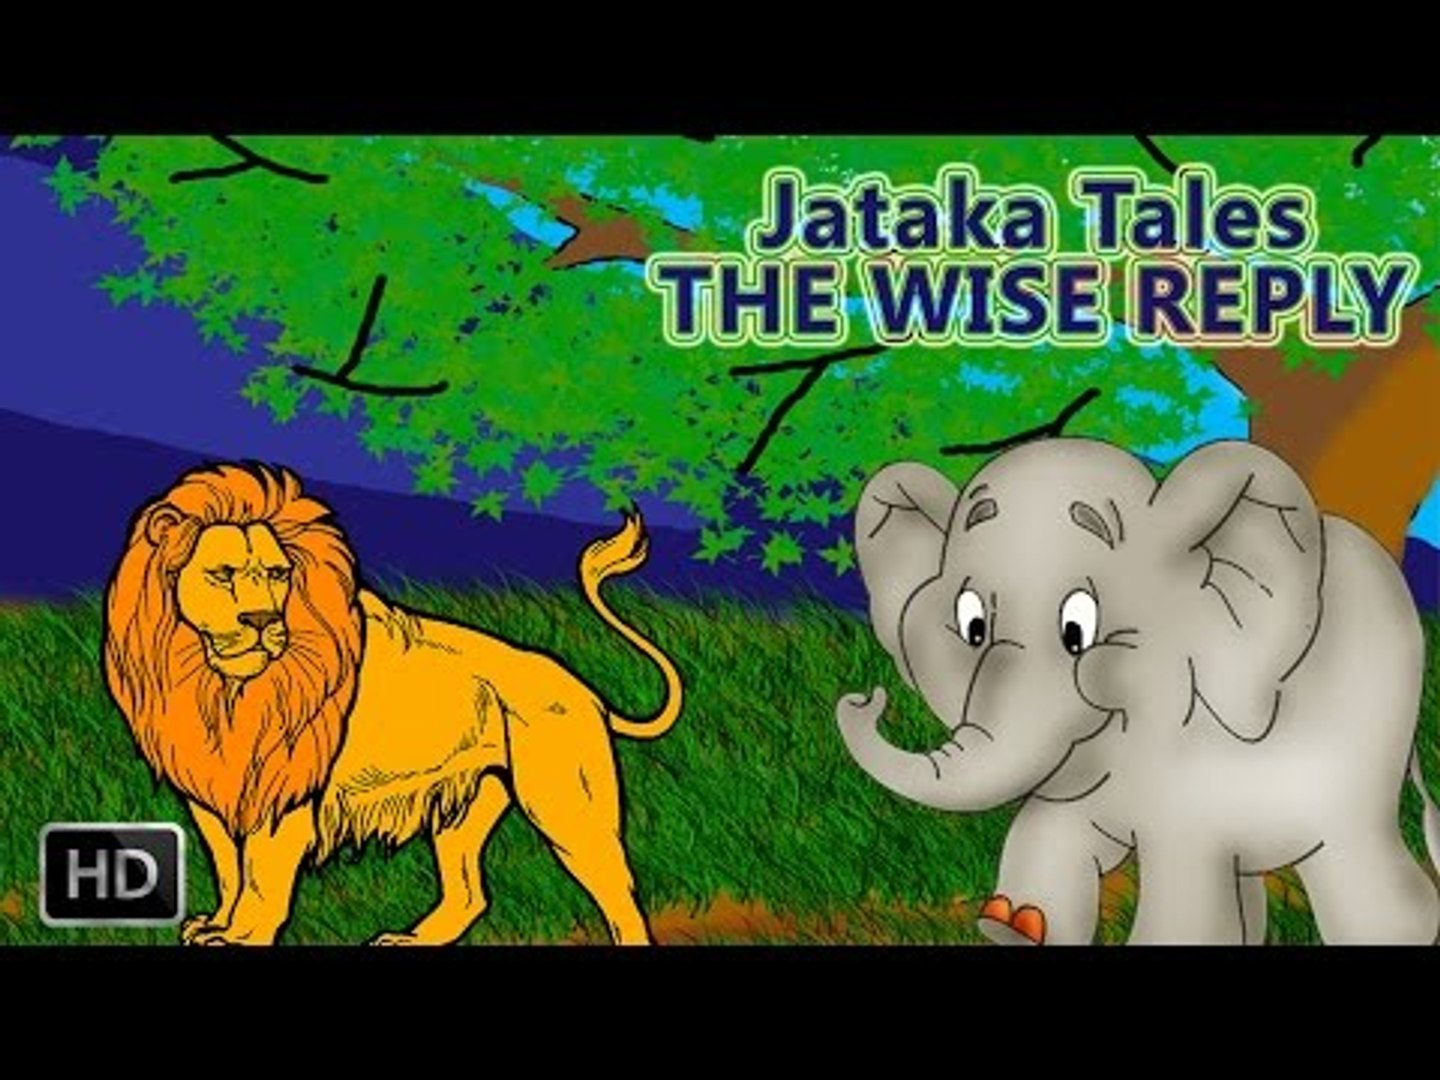 The Wise Dog King: A story based on the Jataka tales